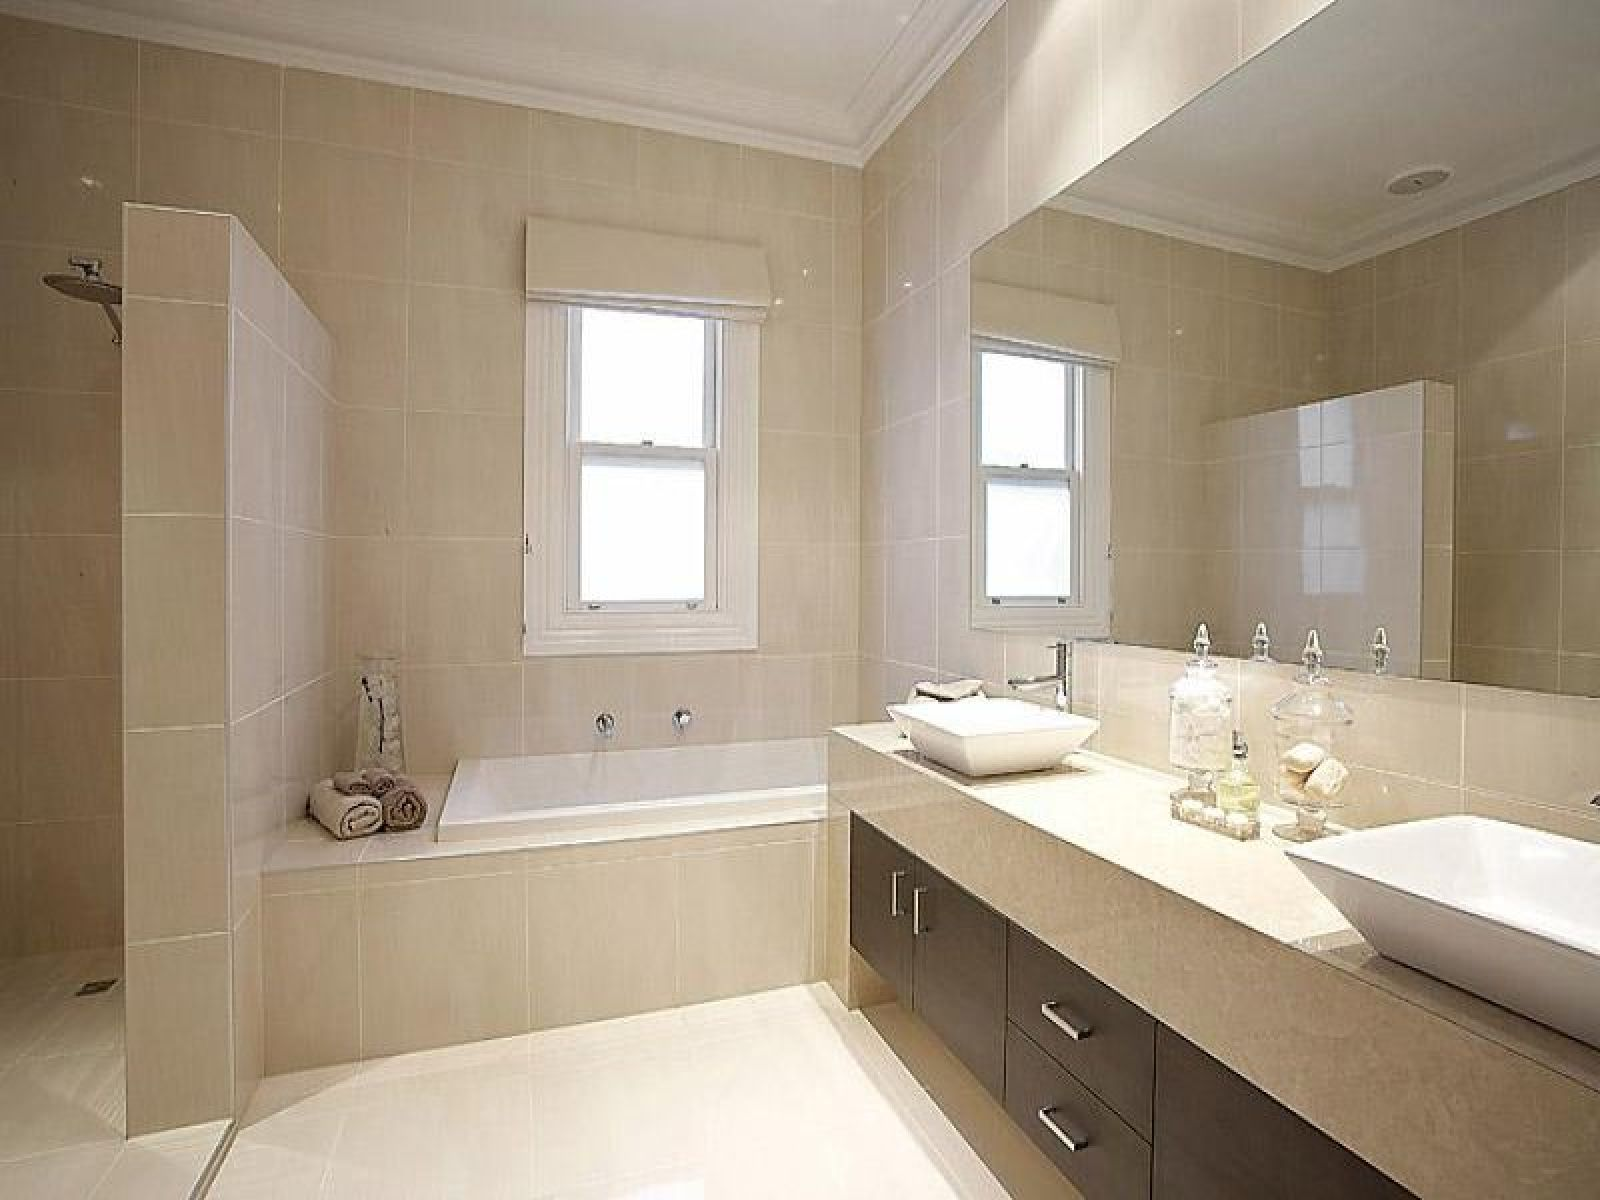 Renovation salle de bain lyon for Australian bathroom design ideas